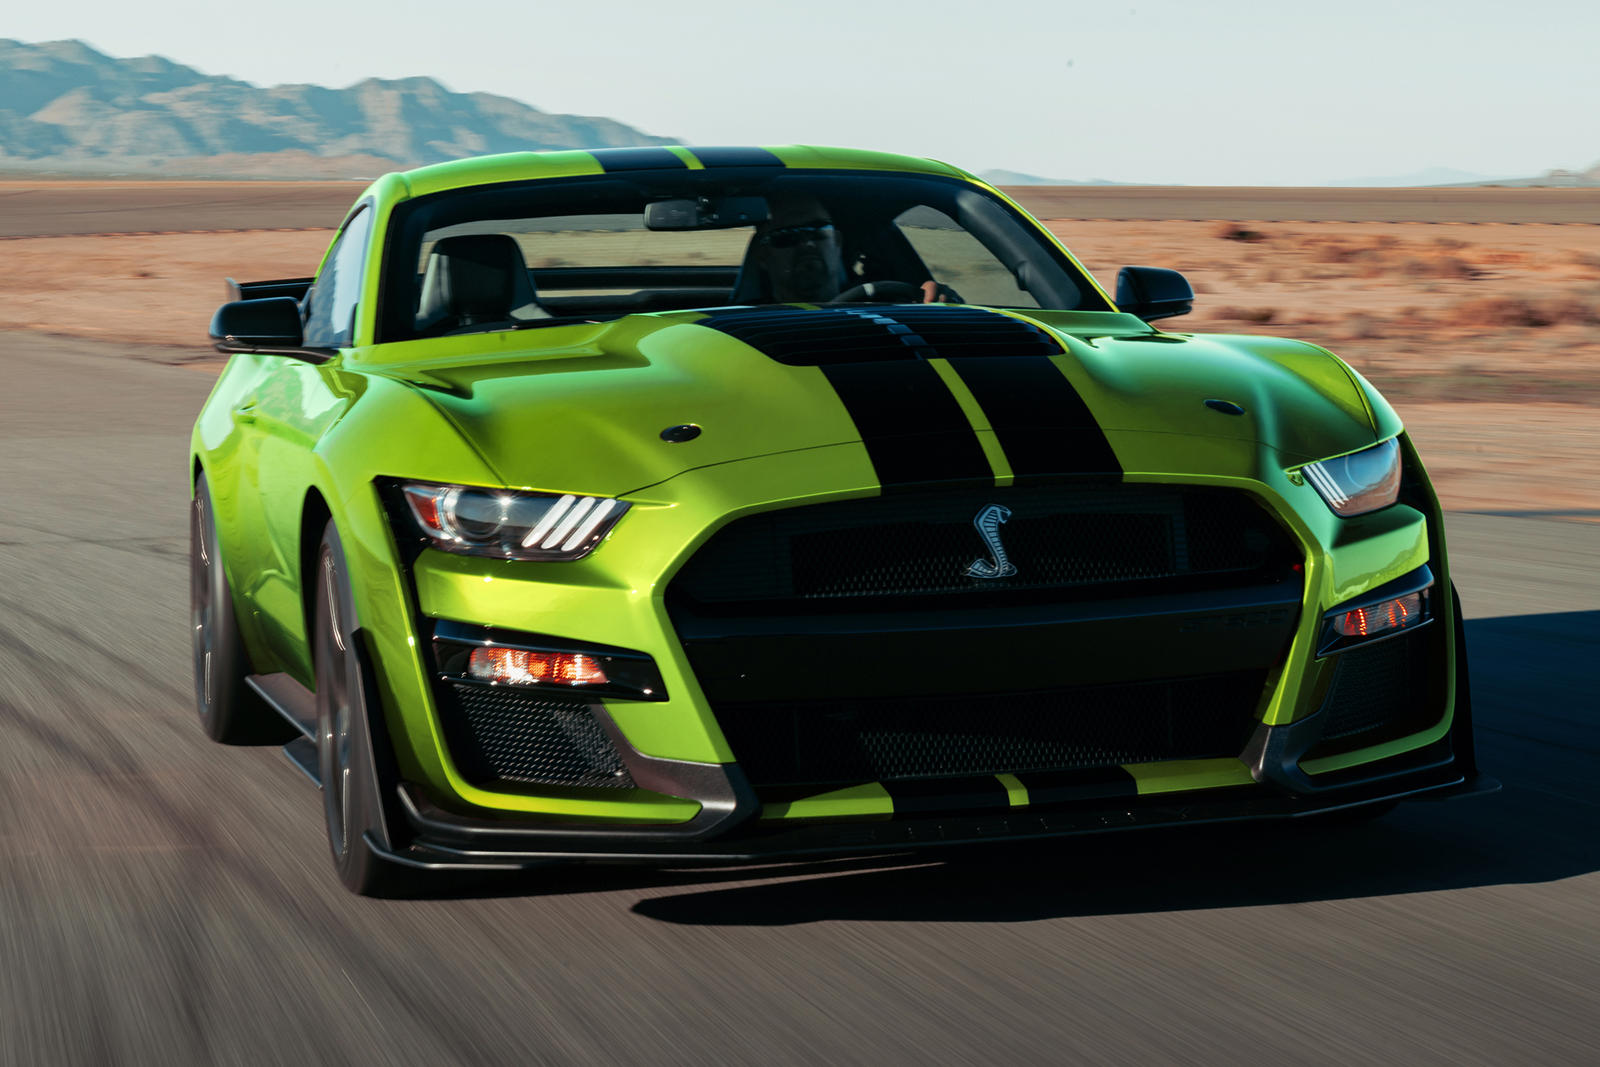 2020 ford mustang shelby gt500 gets new retro inspired color options